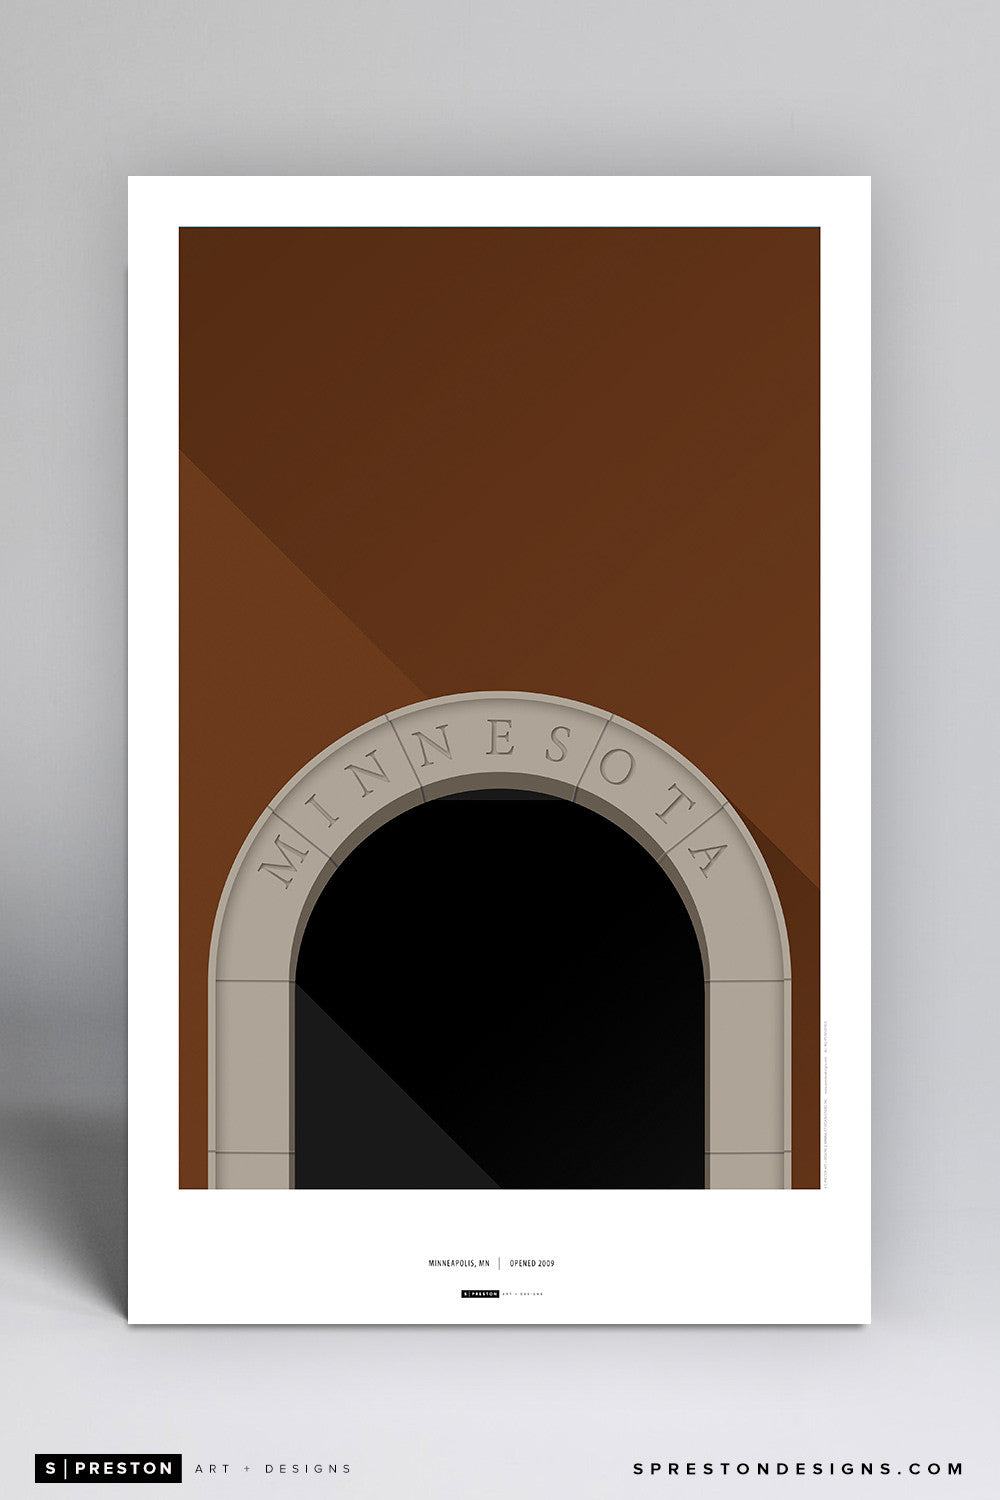 Minimalist TCF Bank Stadium Art Poster Art Poster - University of Minnesota - S. Preston Art + Designs